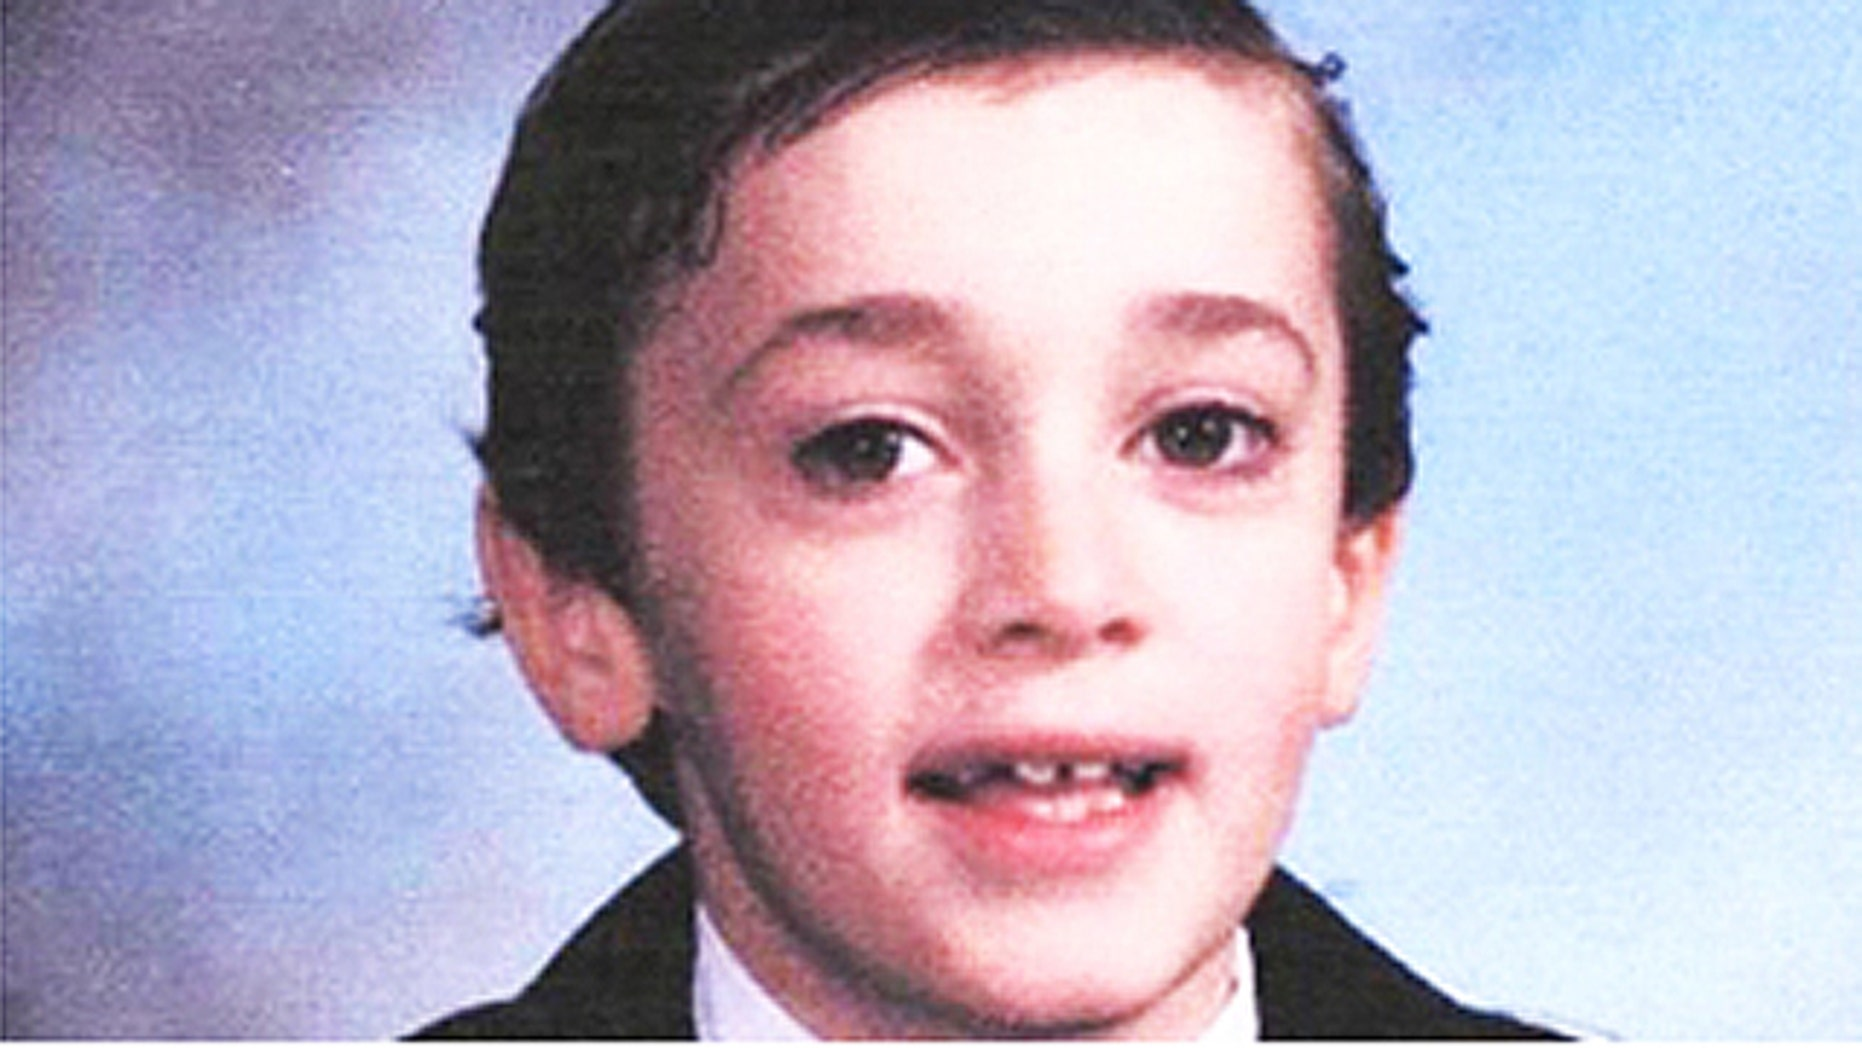 San Bernardino County sheriff's spokeswoman Cindy Bachman said 8-year-old Joshua Robb ran out of the gates of Grandview Elementary School's playground in Arrowhead at about 11 a.m. Monday.